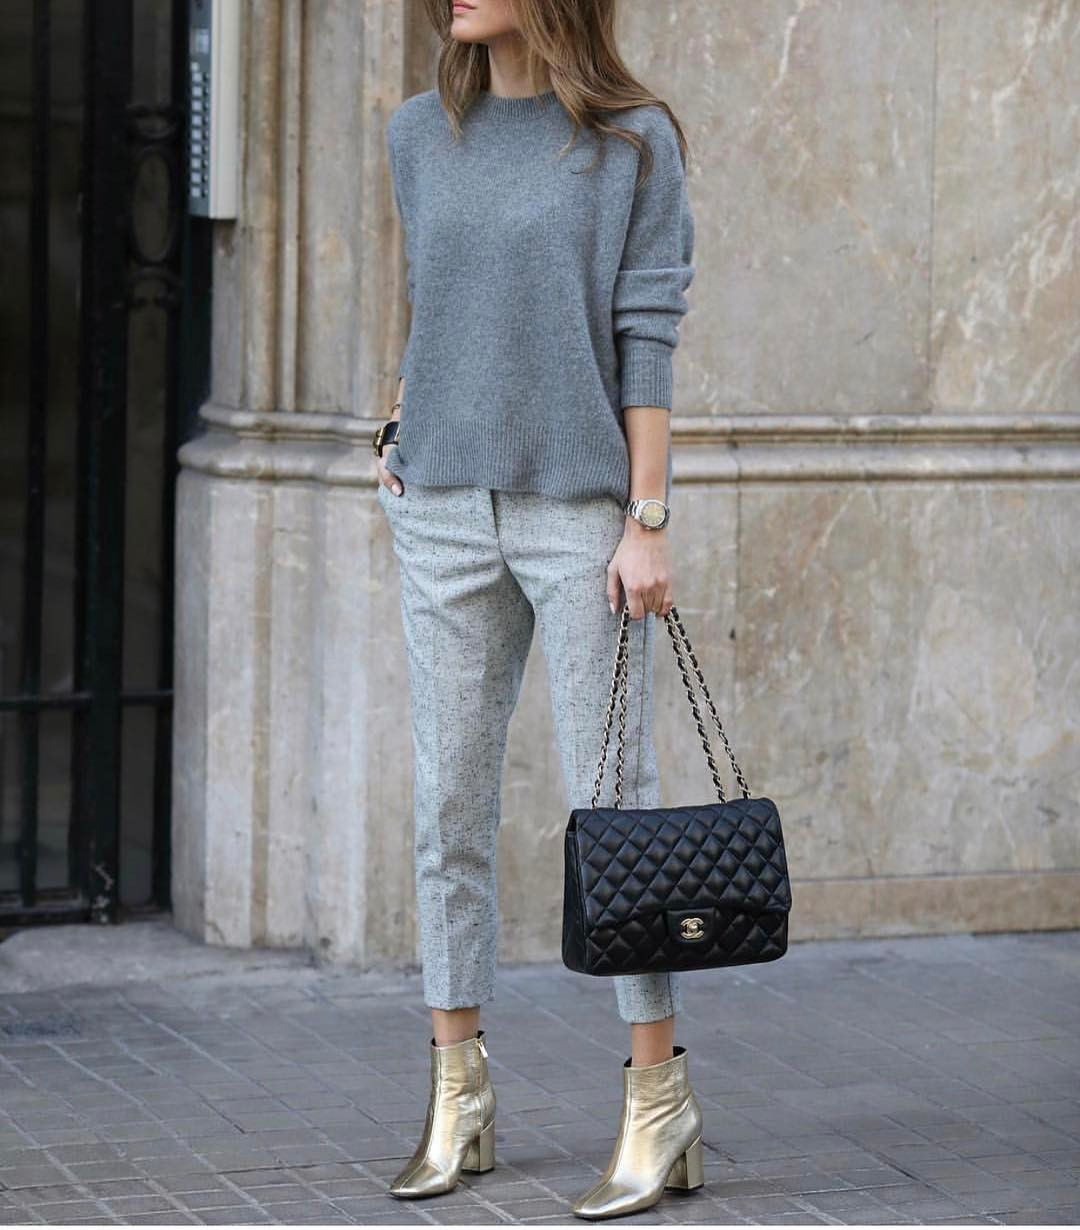 Can I Wear Metallic Gold Ankle Boots With Grey Monochrome Basics 2021